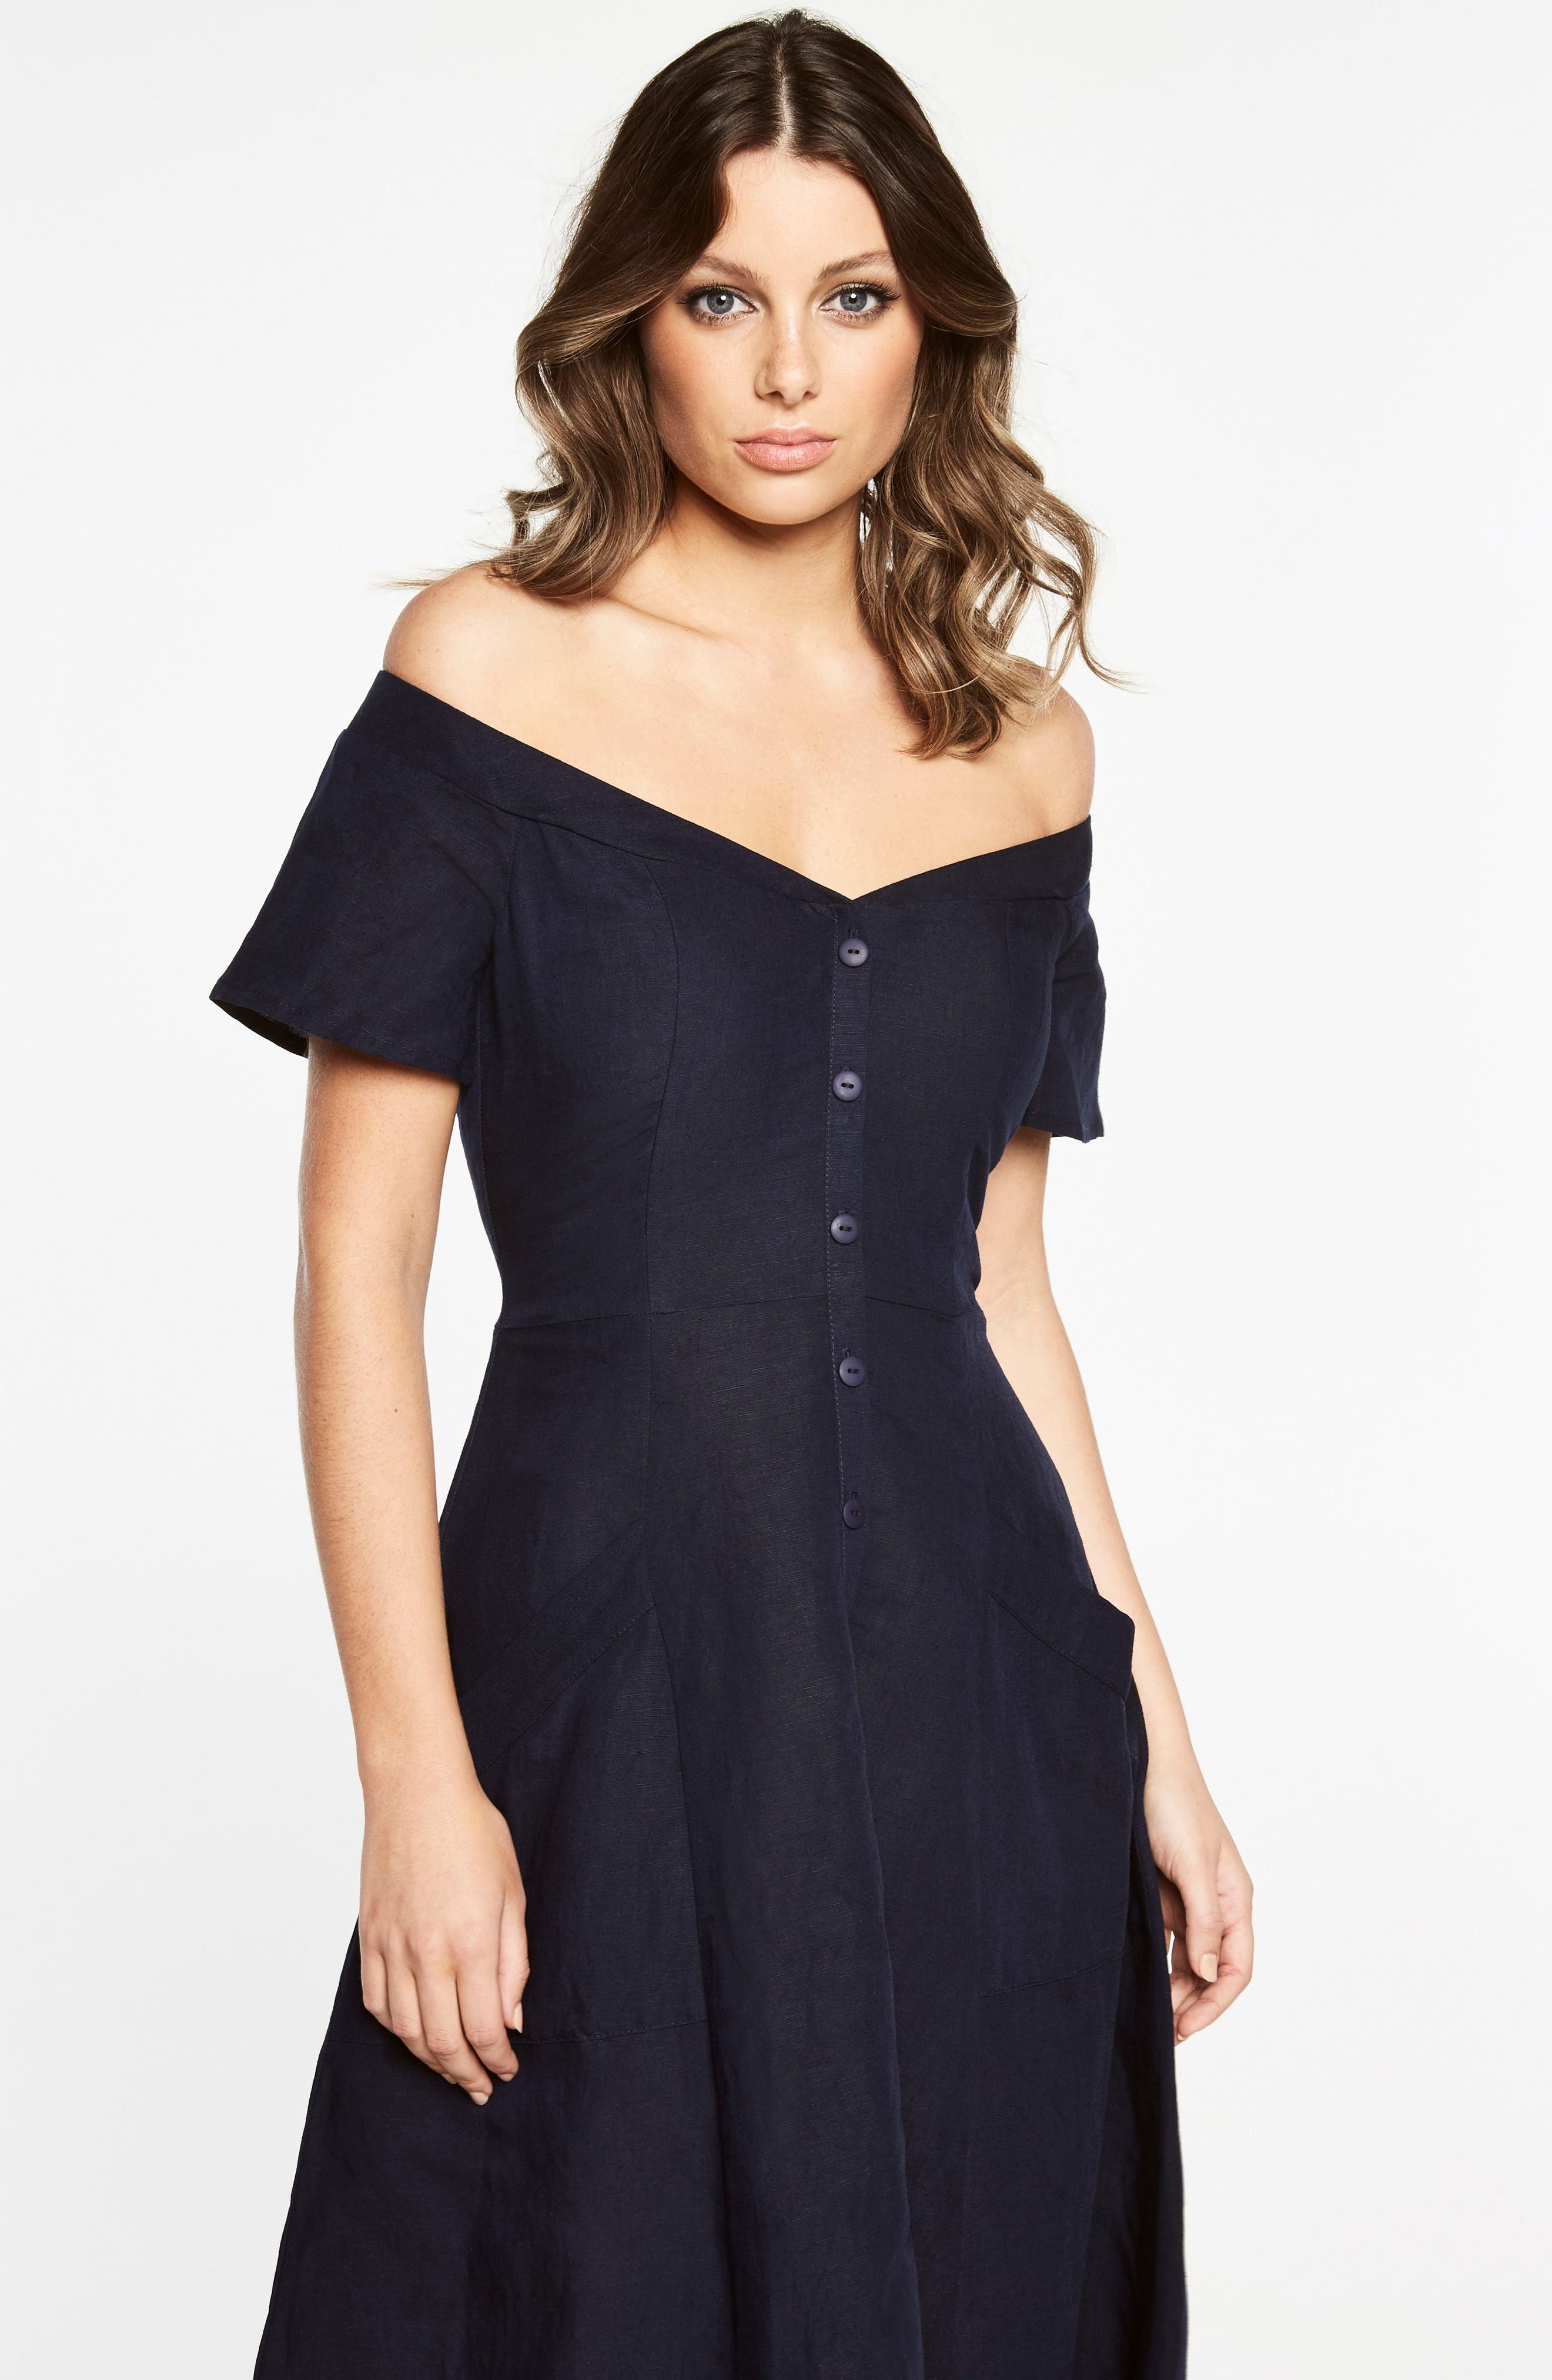 Ophelia Off the Shoulder Dress,                             Alternate thumbnail 5, color,                             Navy